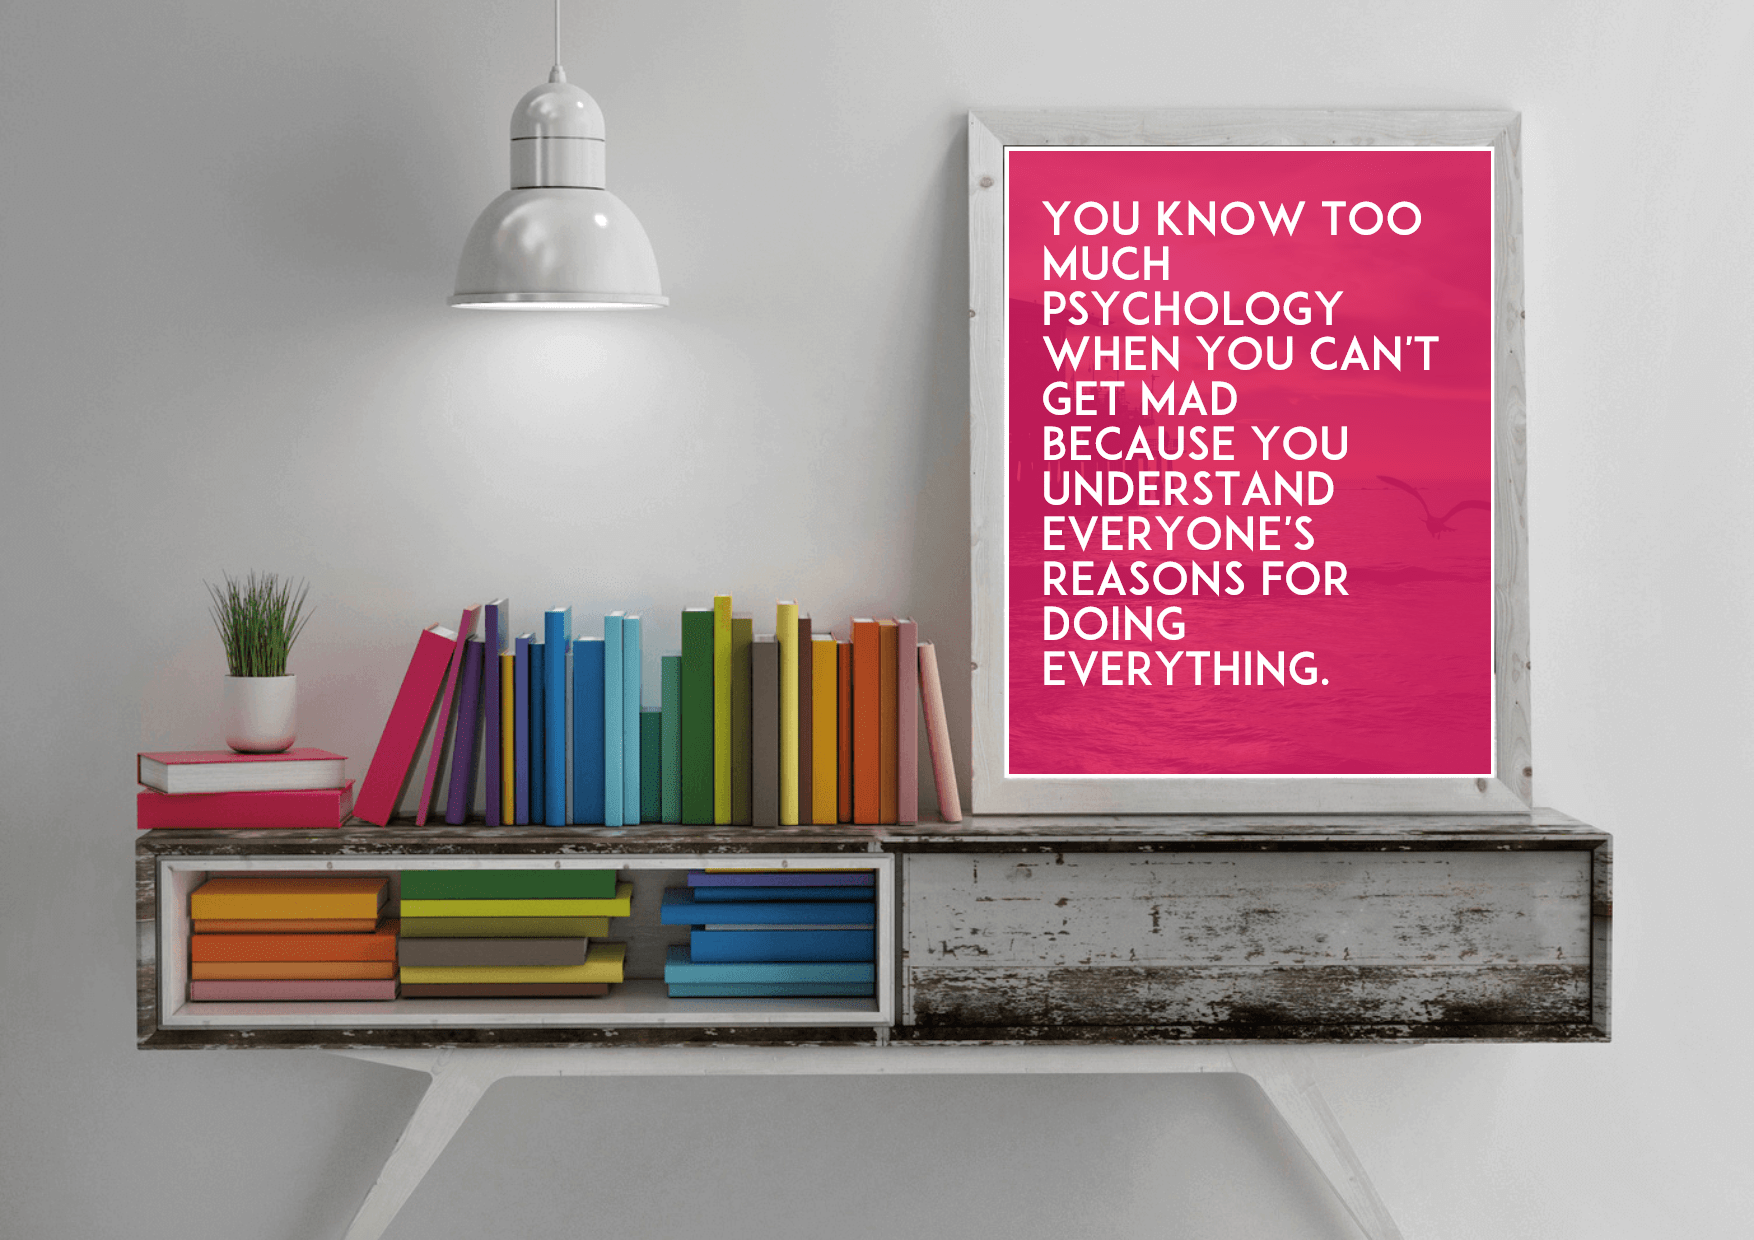 Shelf,                Shelving,                Product,                Furniture,                Design,                Poster,                Text,                Quote,                Mockup,                Inspiration,                Life,                Photo,                Image,                 Free Image